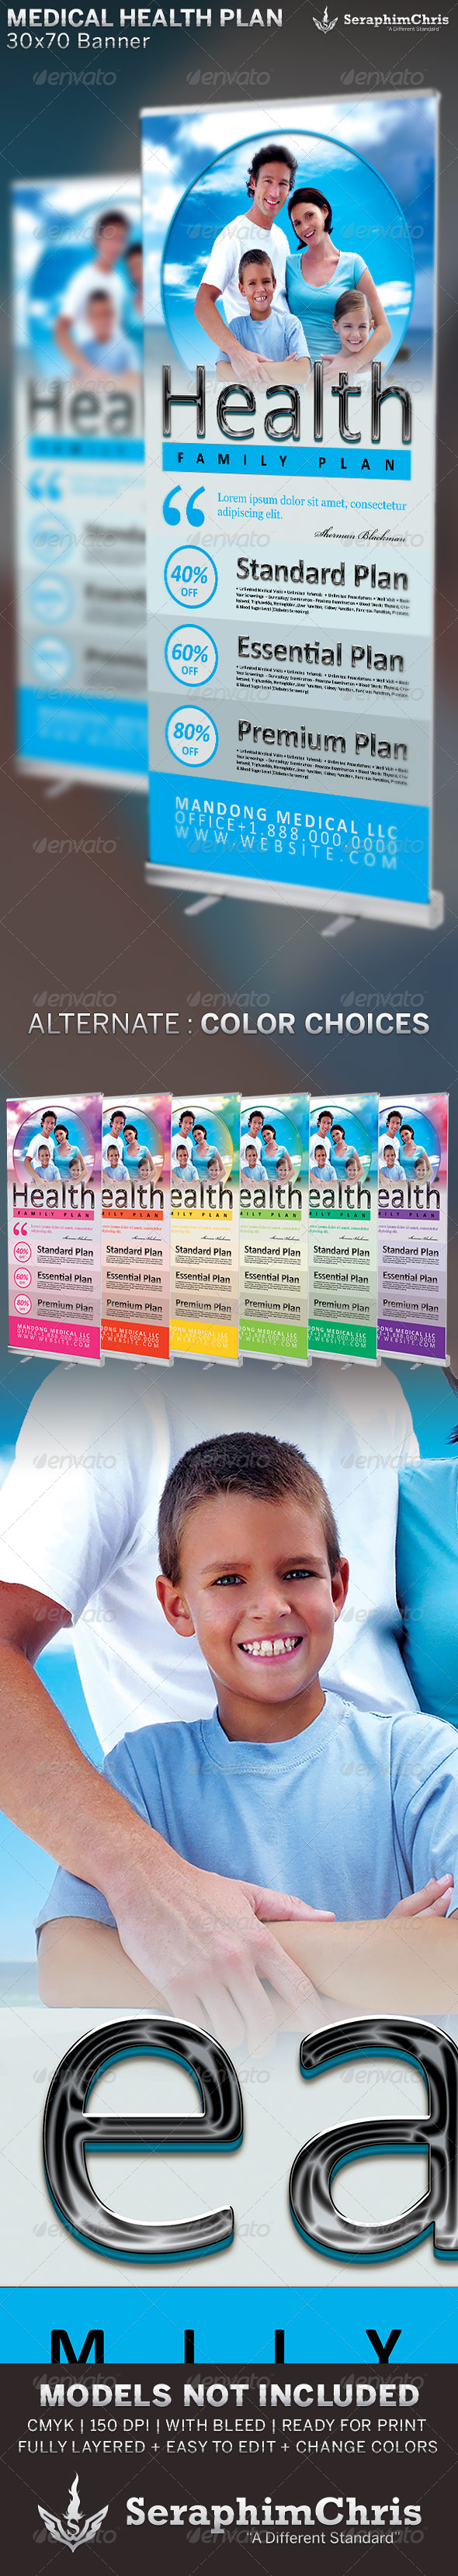 Medical Health Plan Banner Template - Signage Print Templates